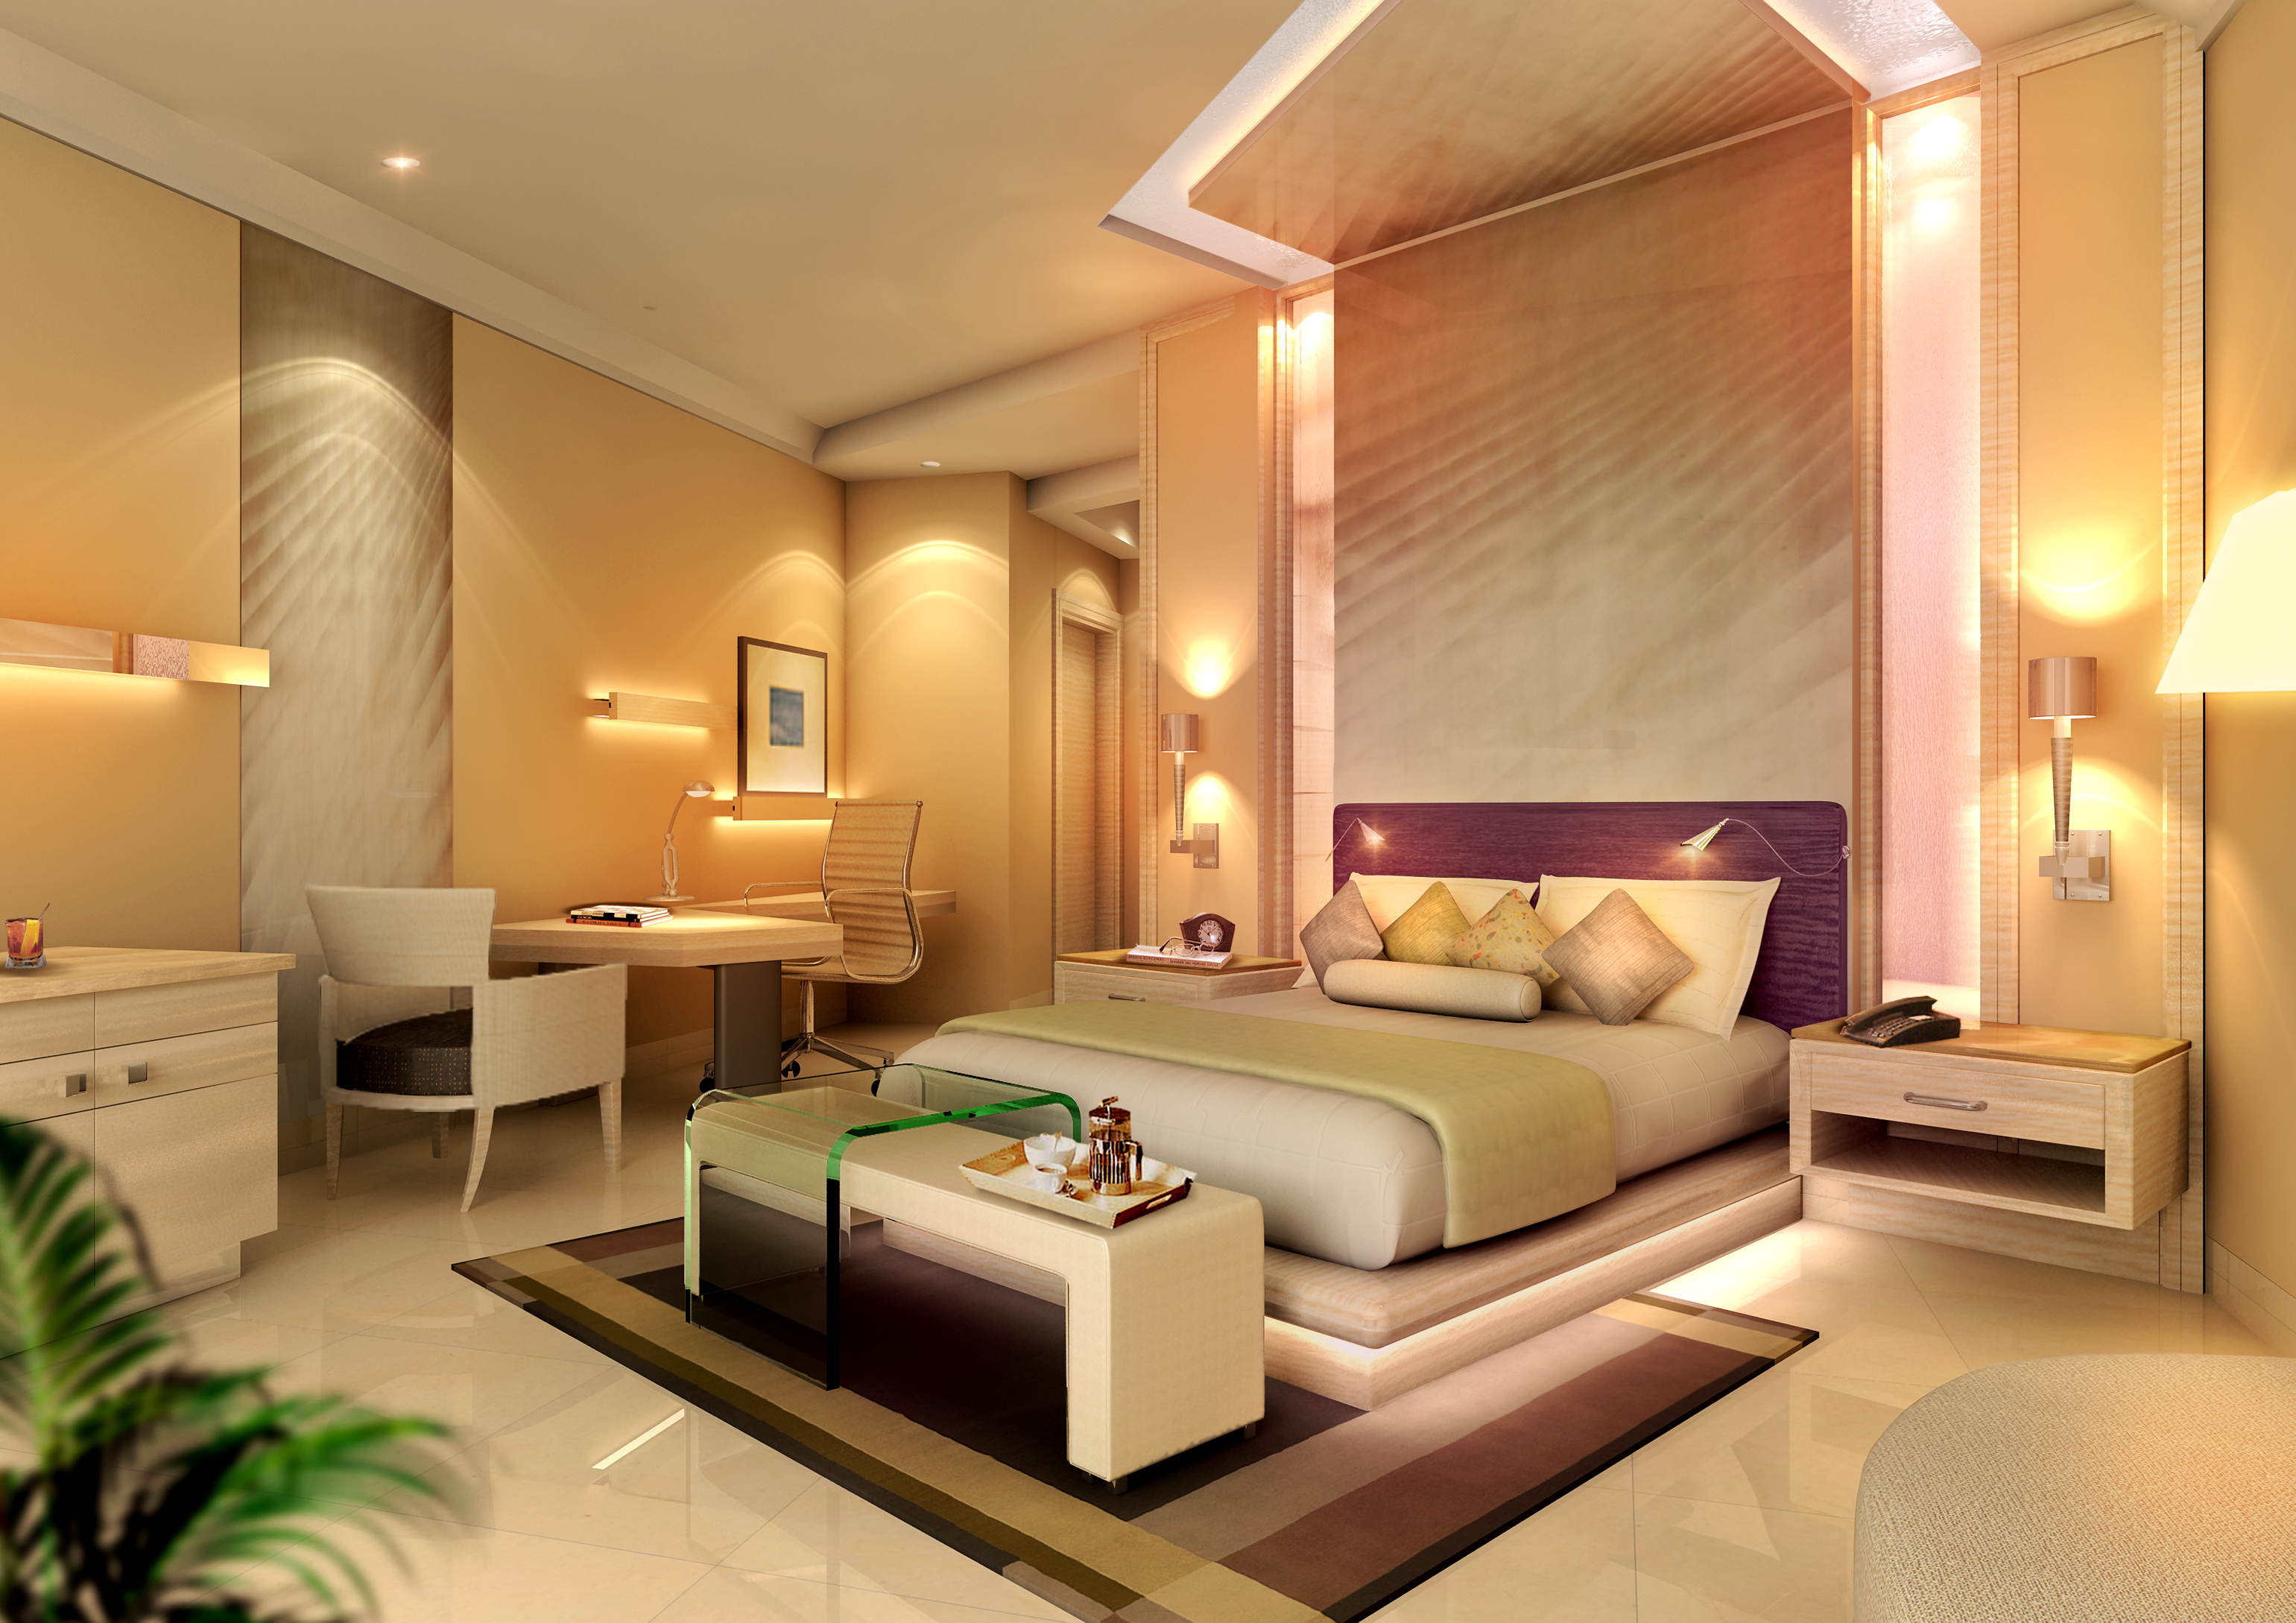 The 7 most expensive hotel rooms in uae 39 s design home for Most expensive hotel room in dubai